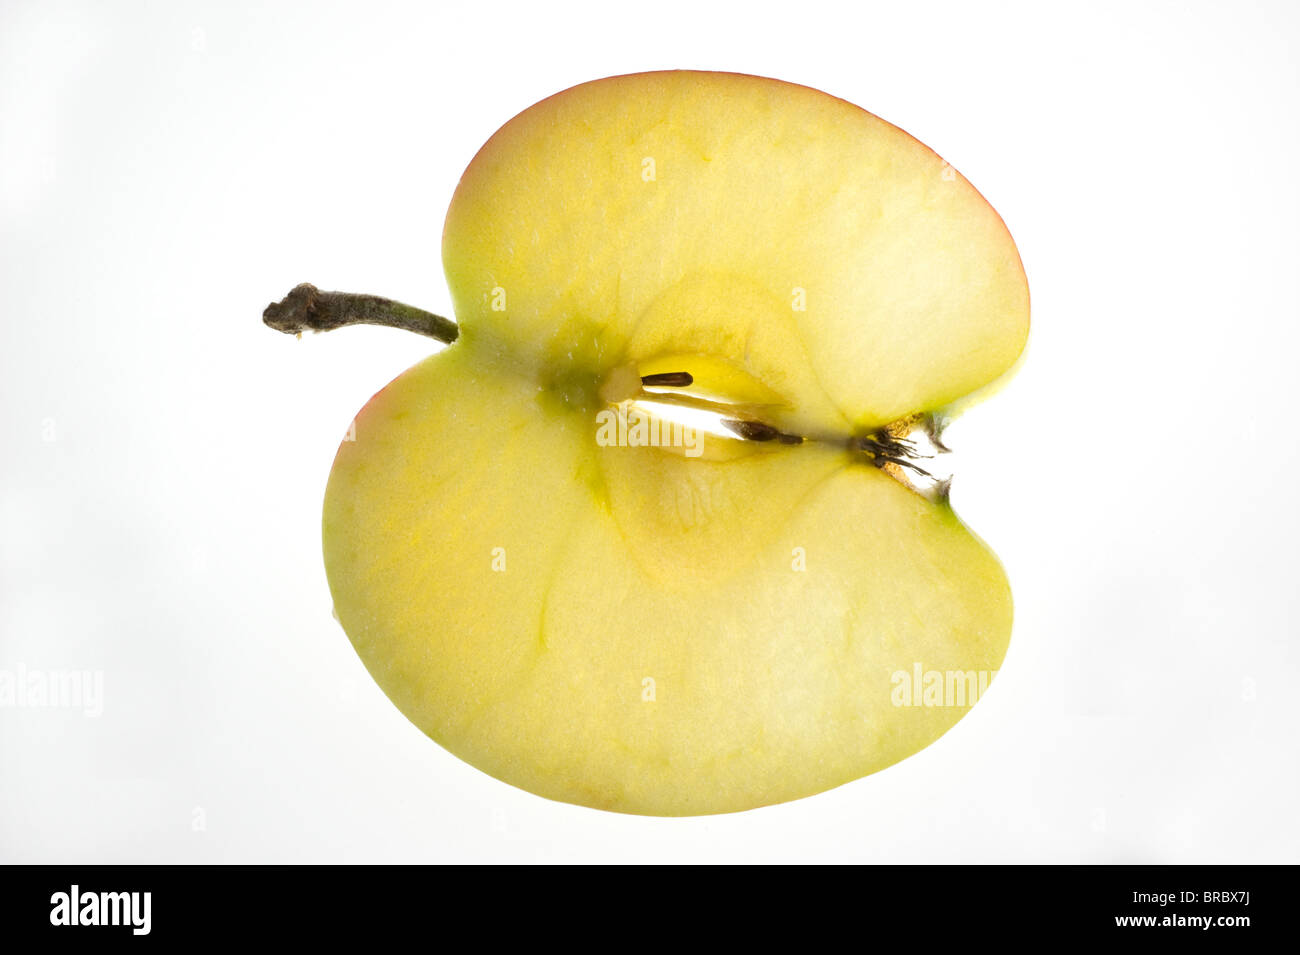 A slice of apple - Stock Image